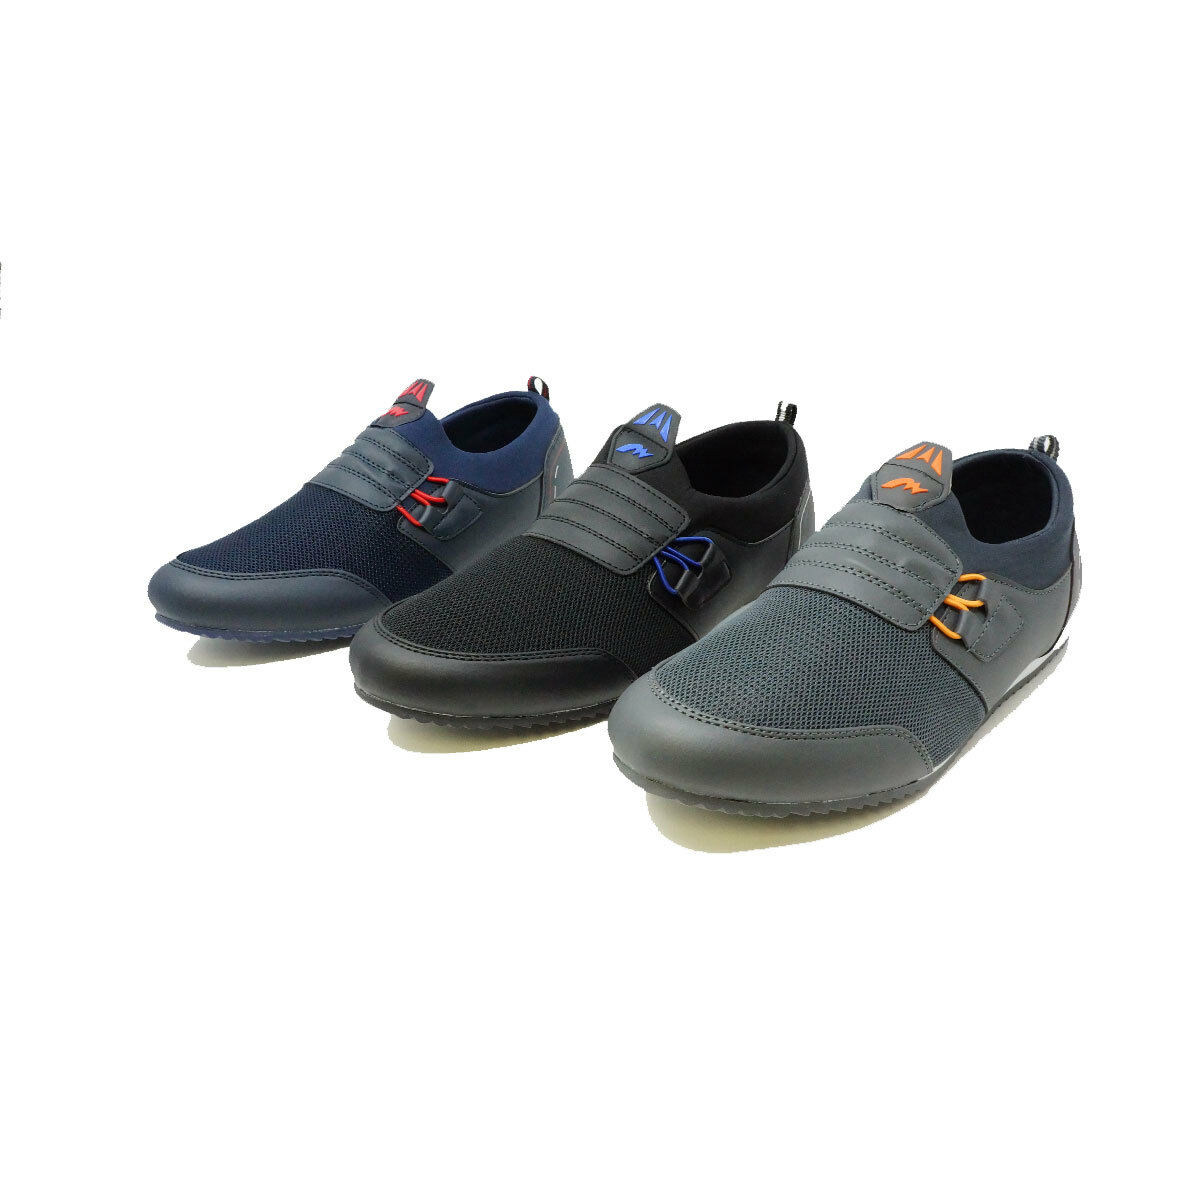 Futoli Casual Fashion Sneaker Great For Every Occasion